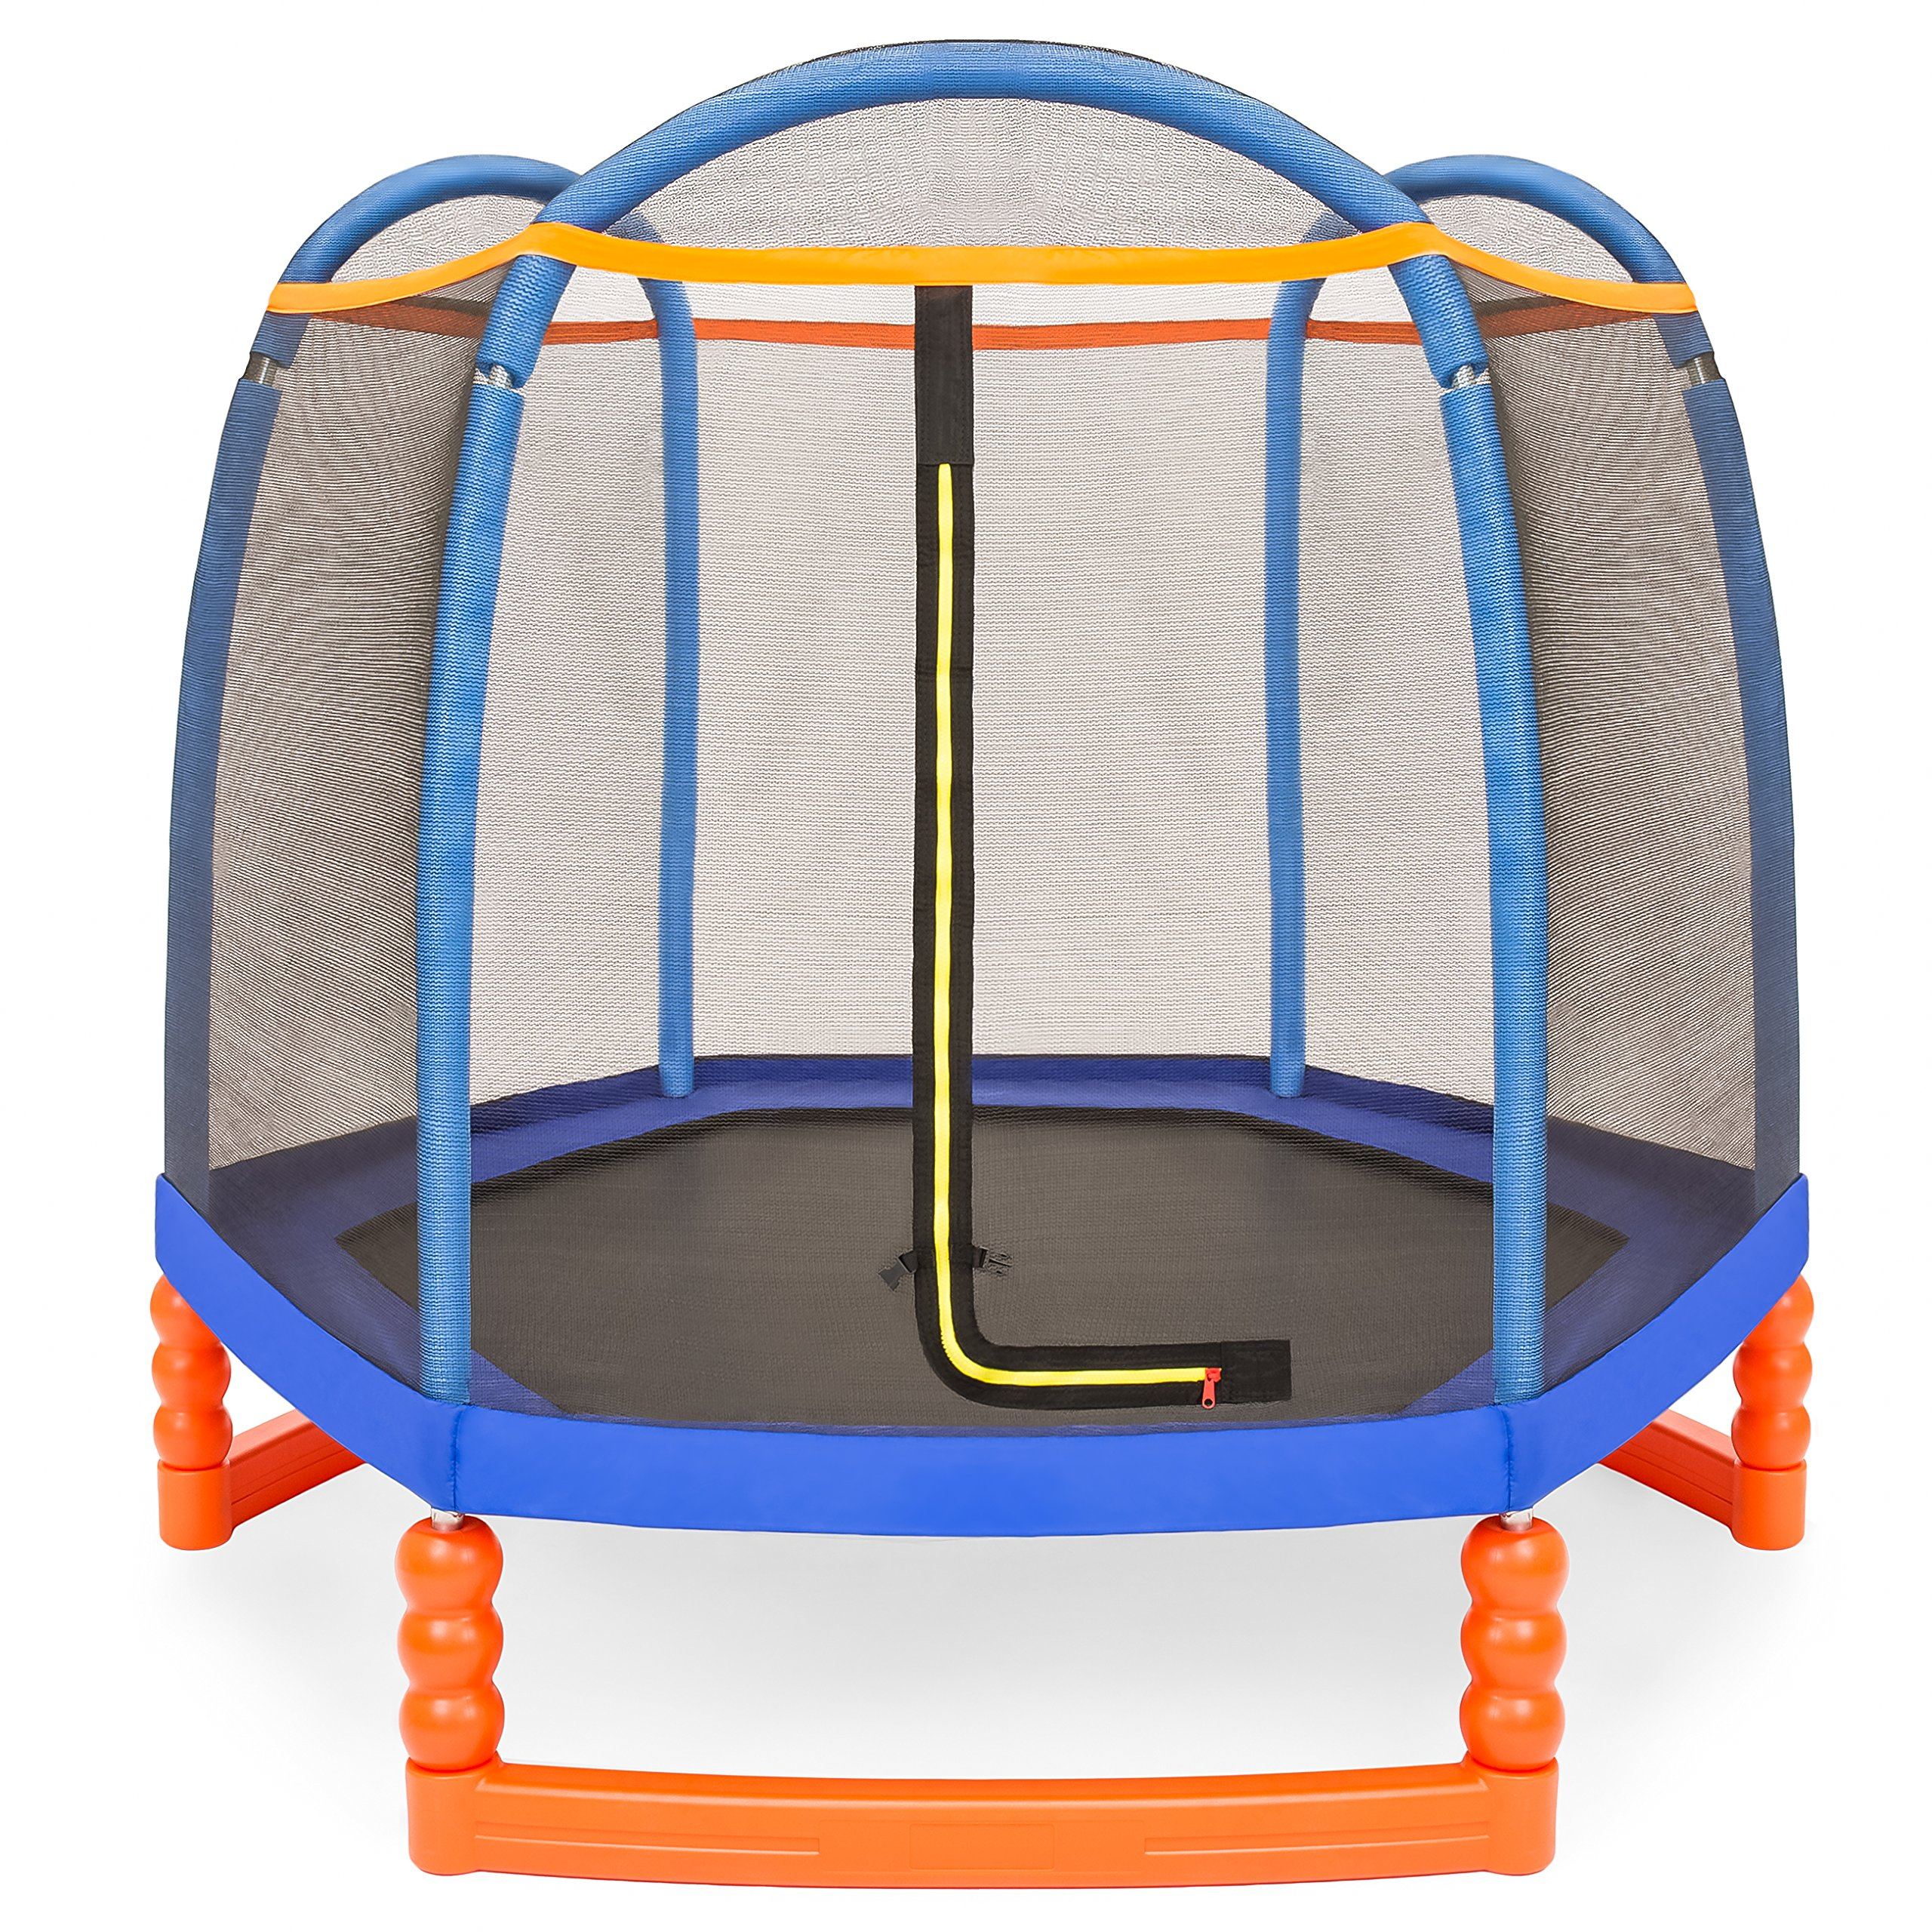 Best Choice Products 7ft Kids Round Mini Trampoline for Indoor & Outdoor Use w/Safety Net Enclosure, Padding, Zipper by Best Choice Products